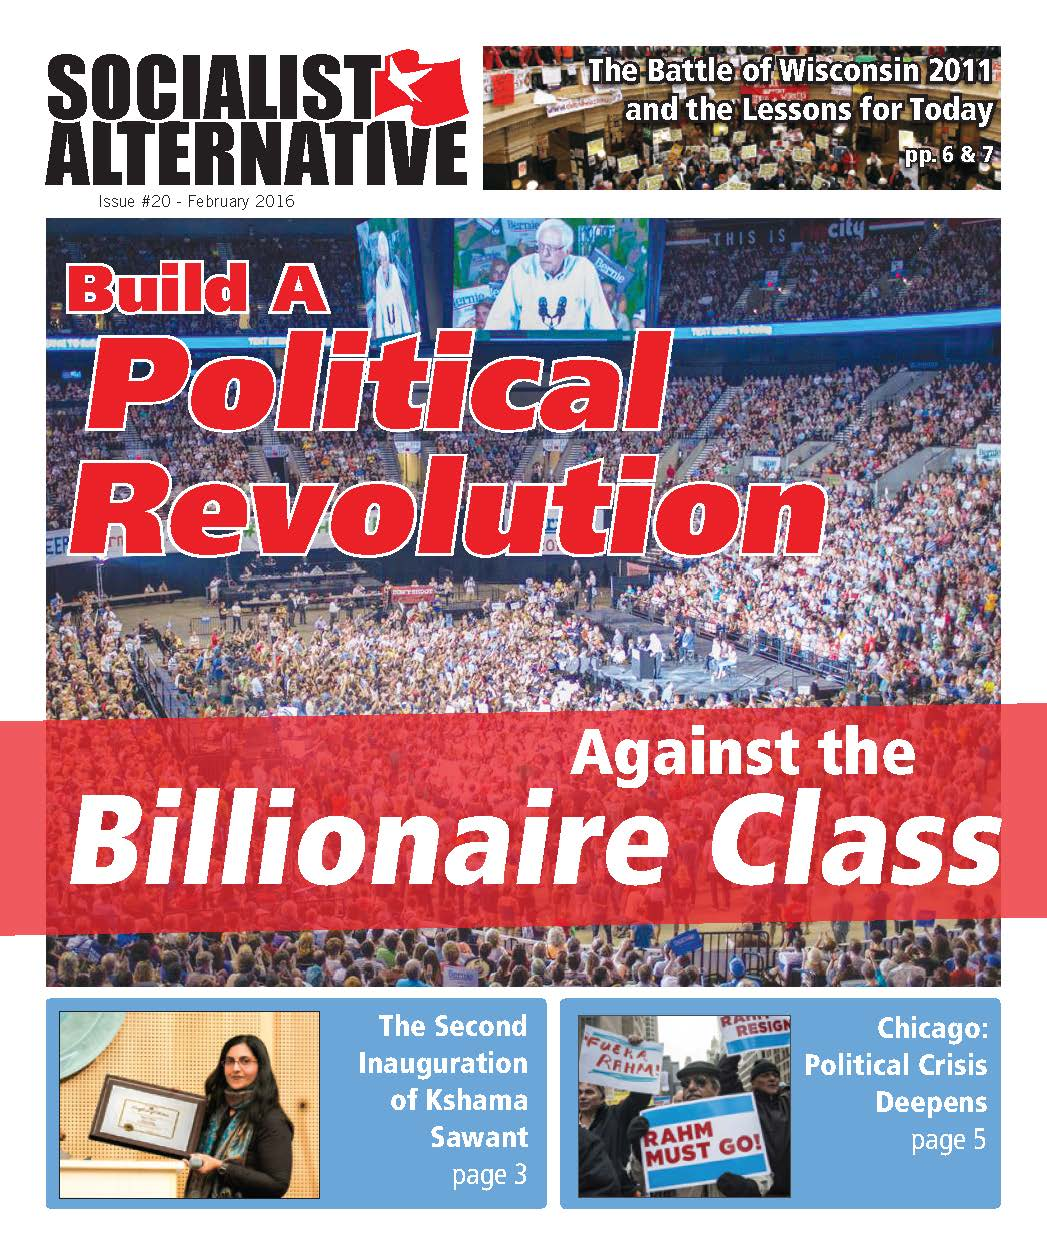 Socialist-Alternative-Newspaper-Issue-20-Cover